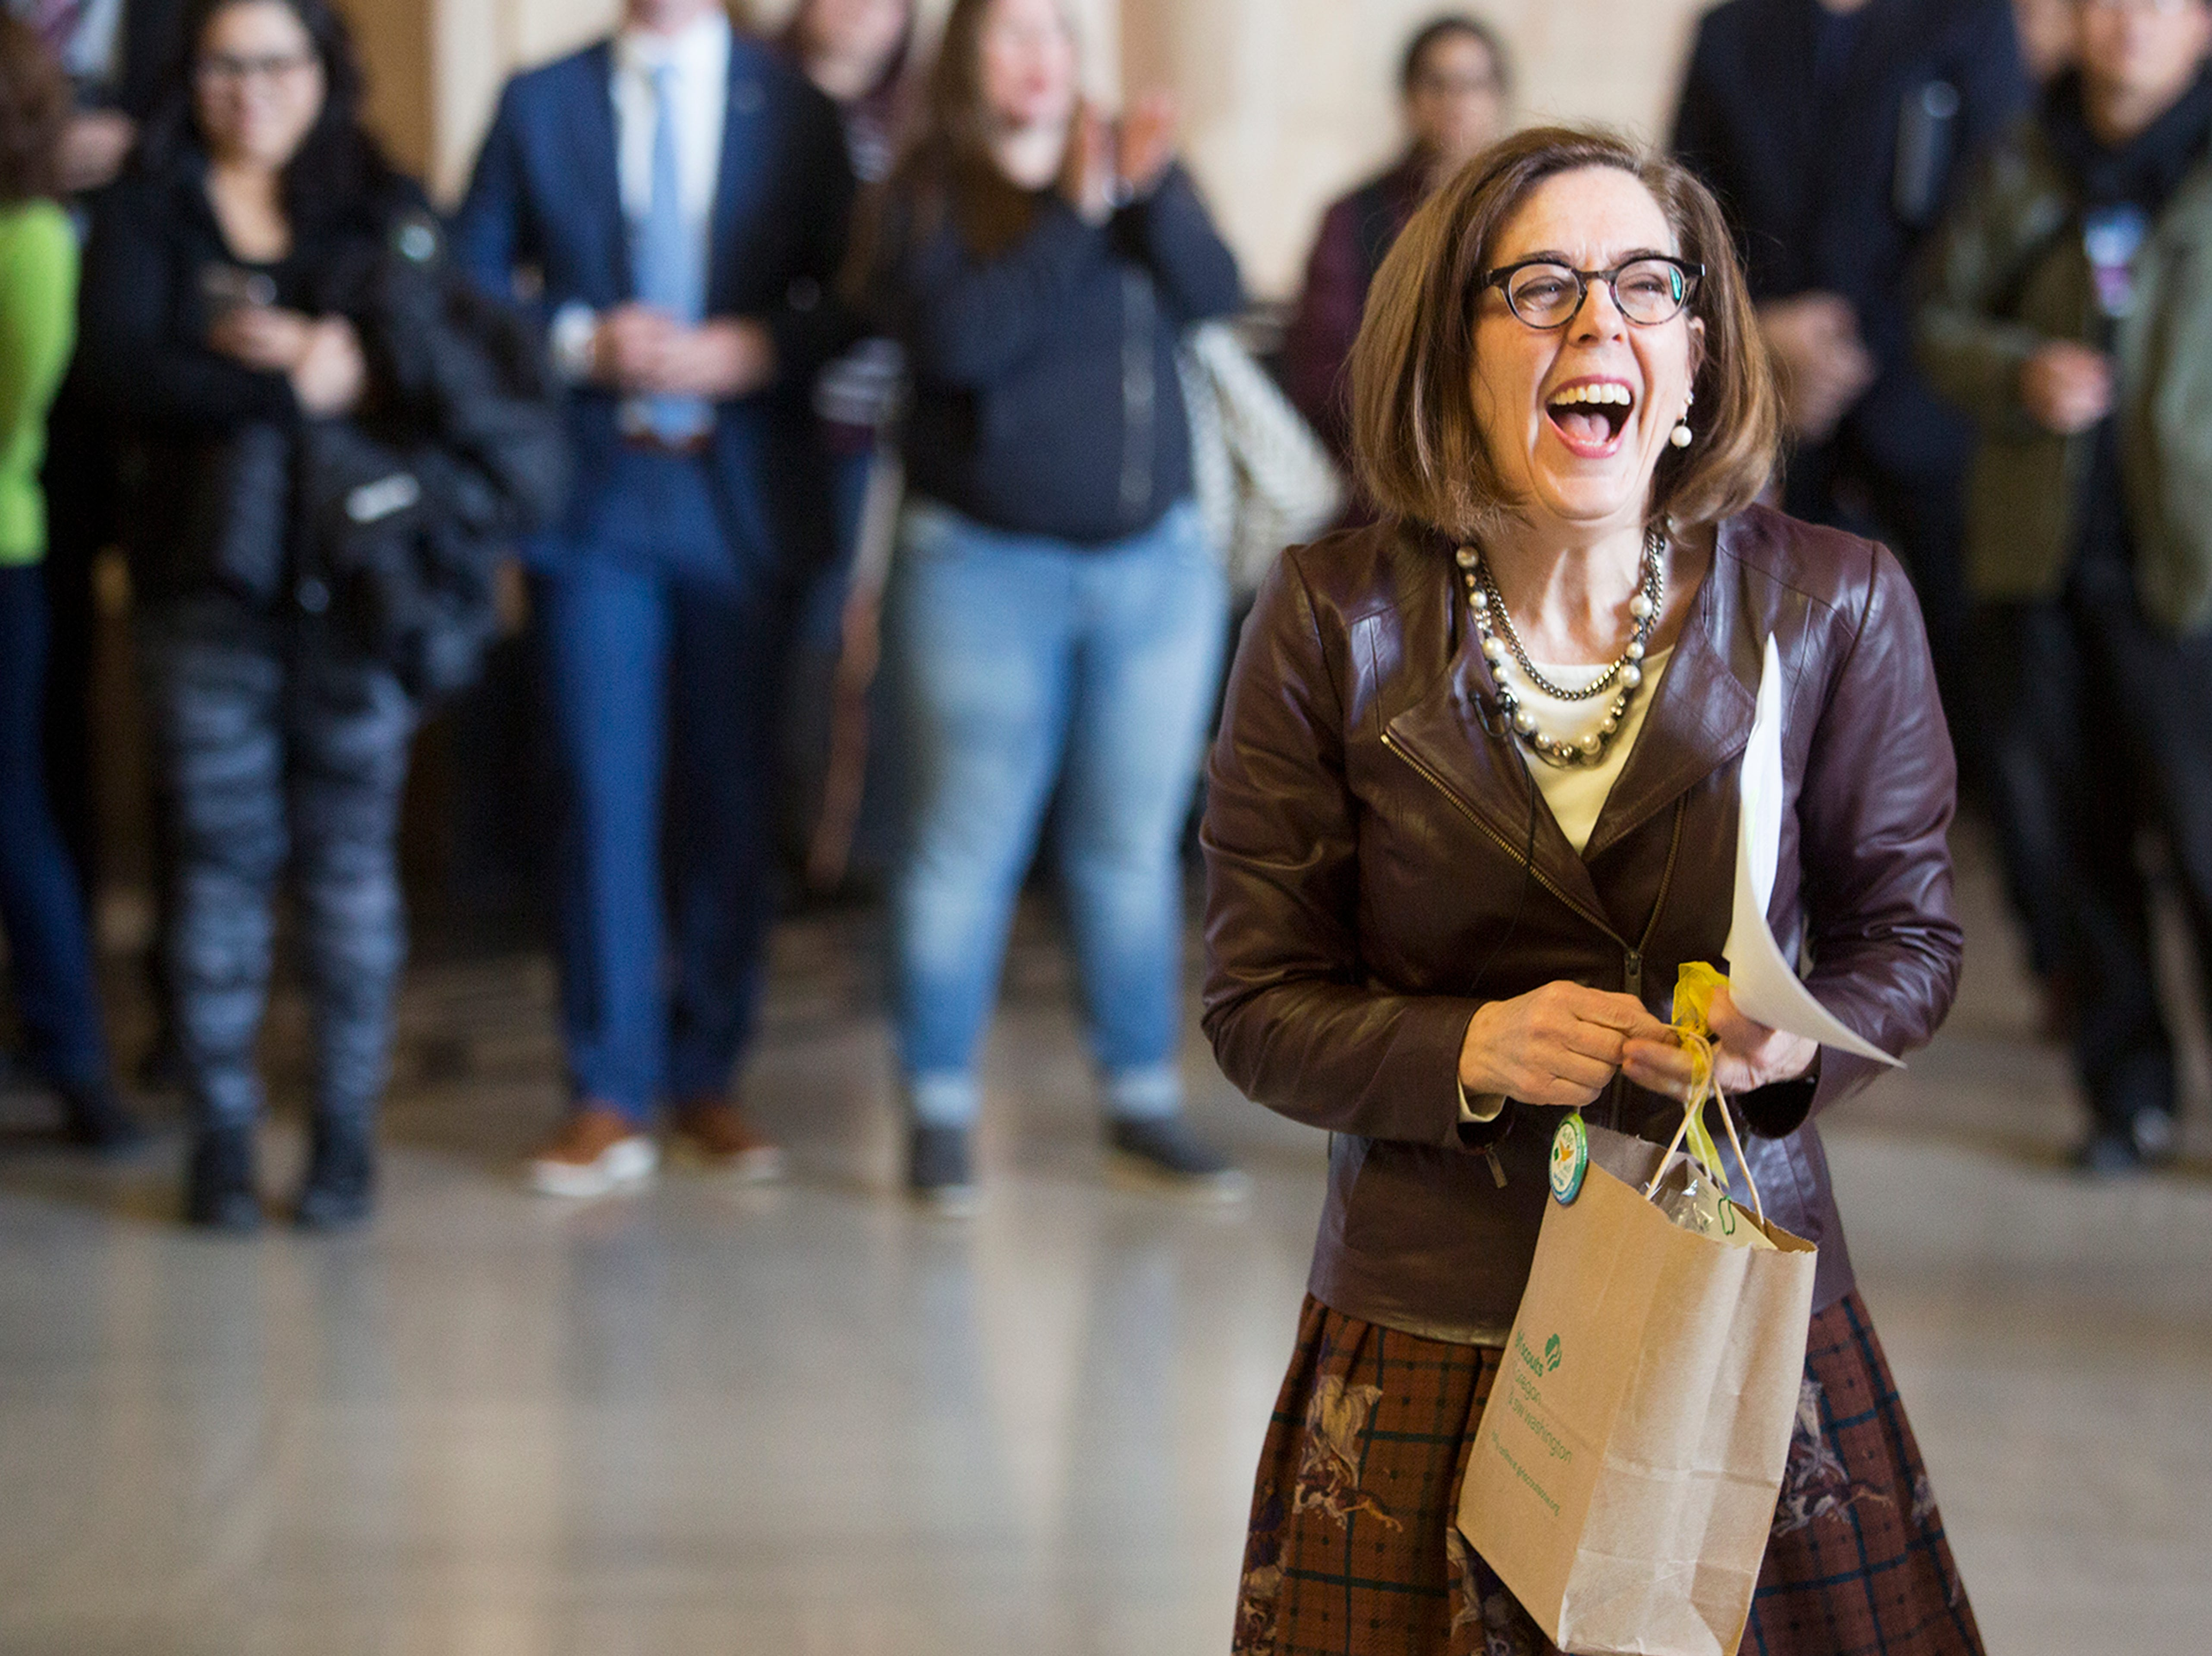 Gov. Kate Brown is gifted Girl Scout cookies during Girl Scout Leadership Day at the Oregon State Capitol in Salem March 12, 2019.